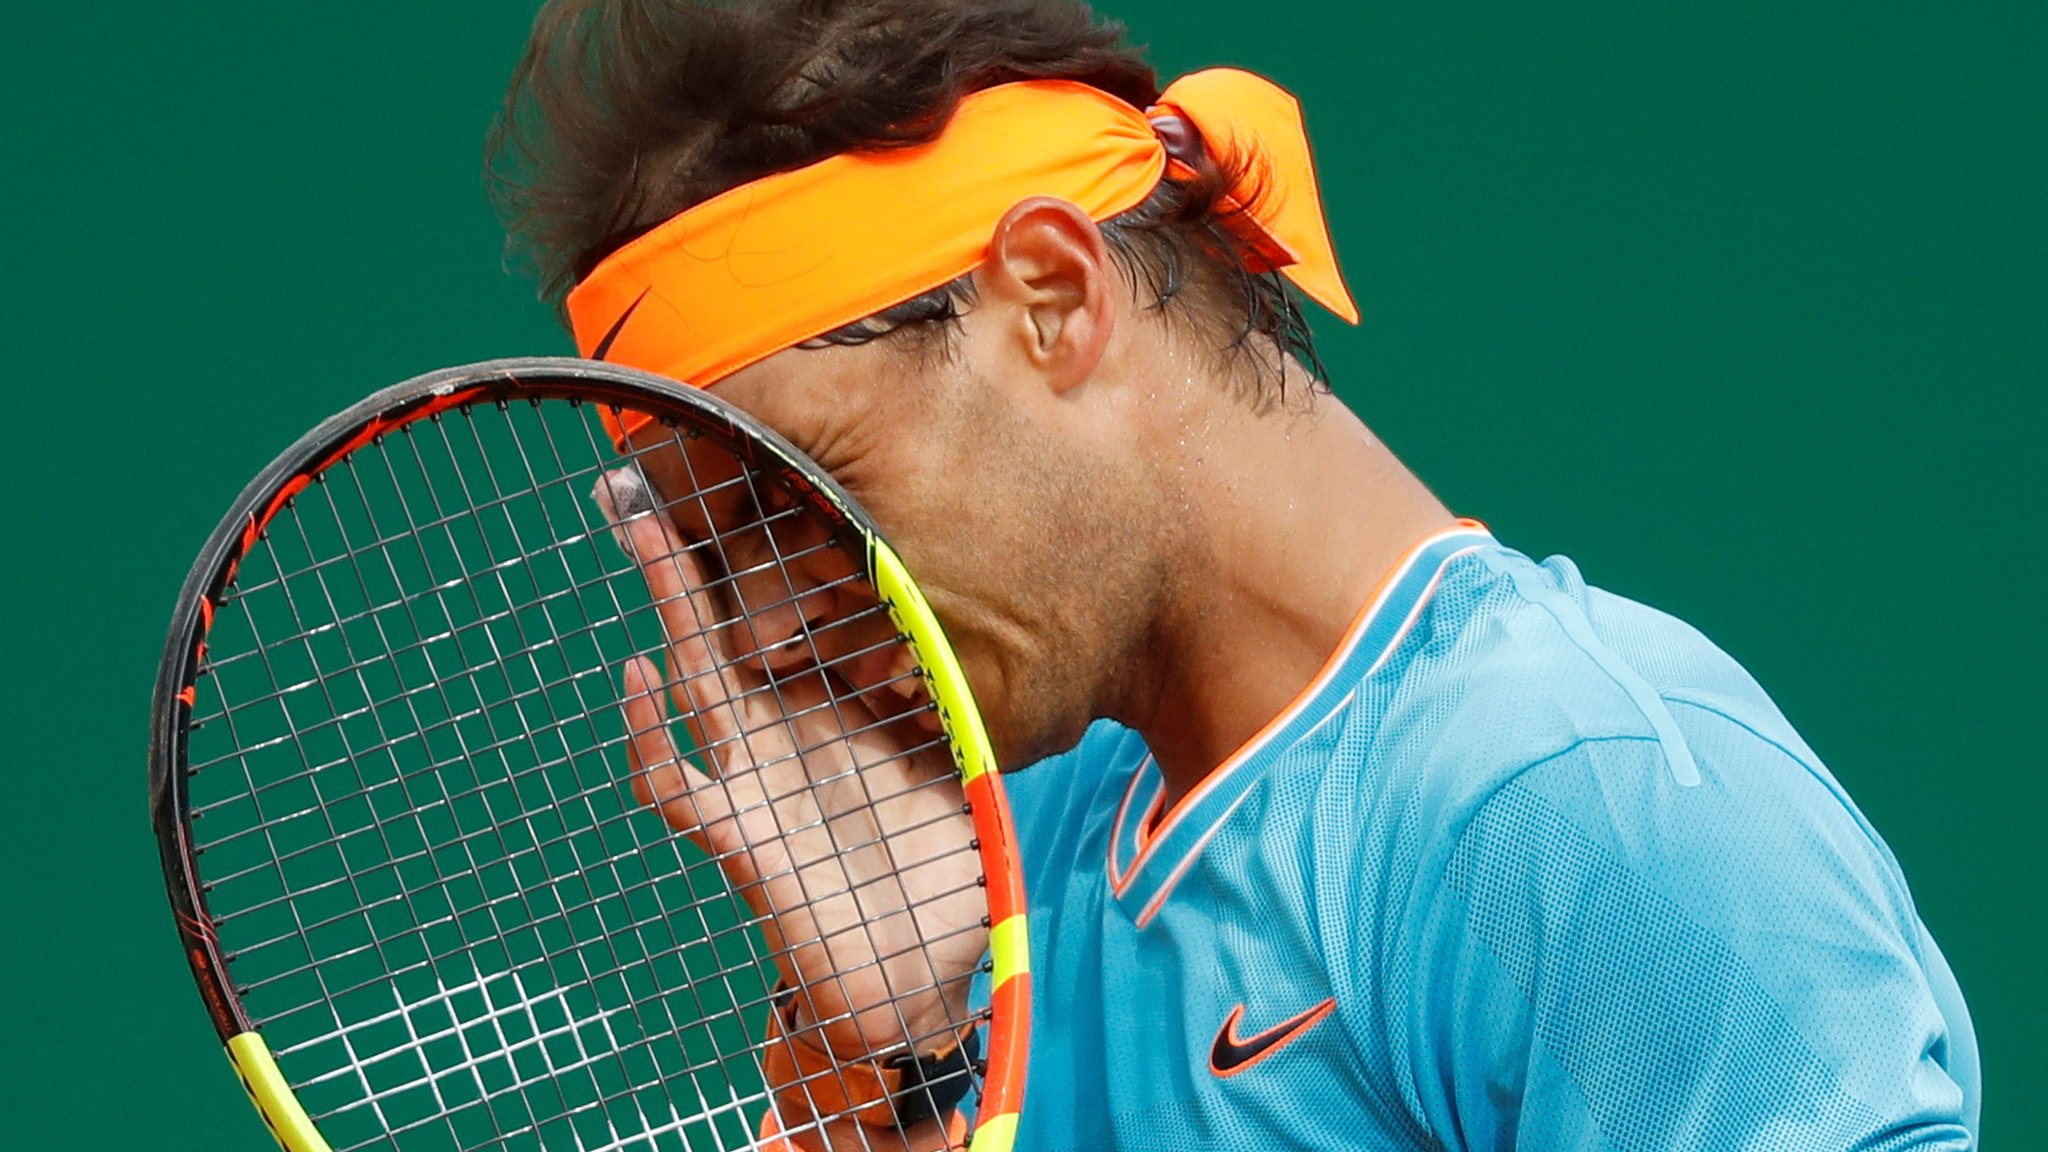 Nadal plays 'one of worst matches on clay' to end hopes of 12th Monte Carlo title